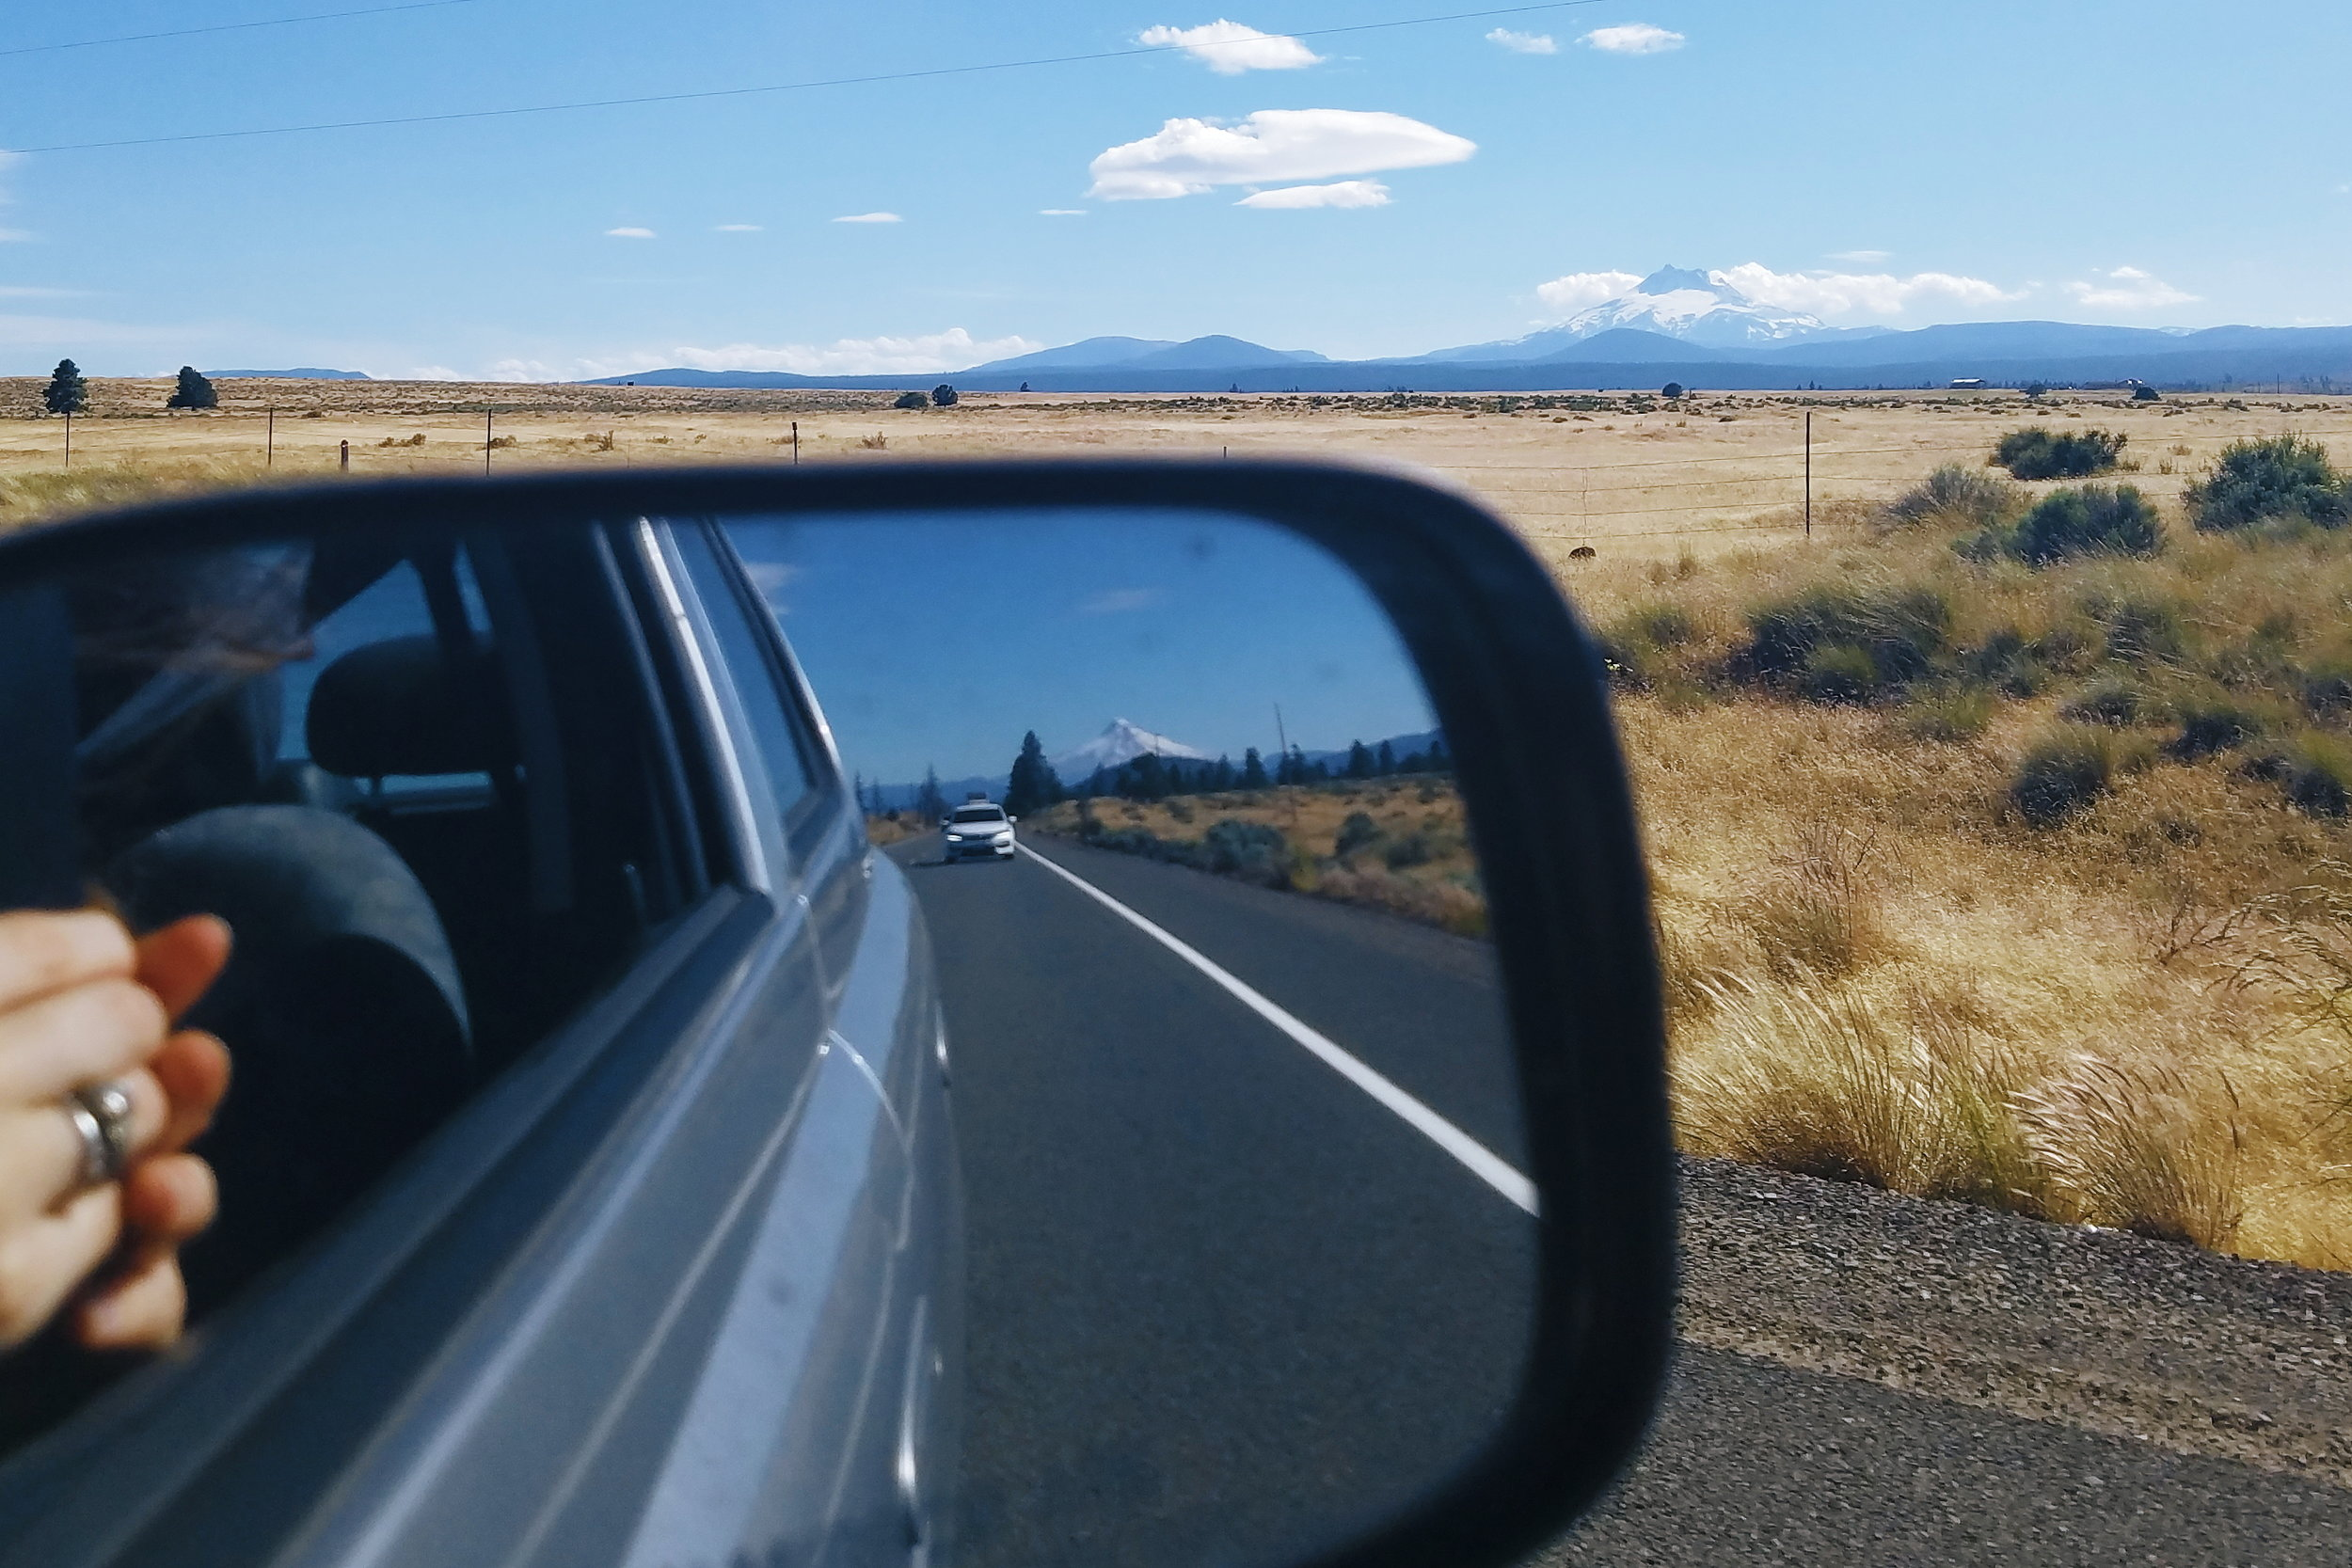 Mt Jefferson out the window and Mt Hood in the mirror!